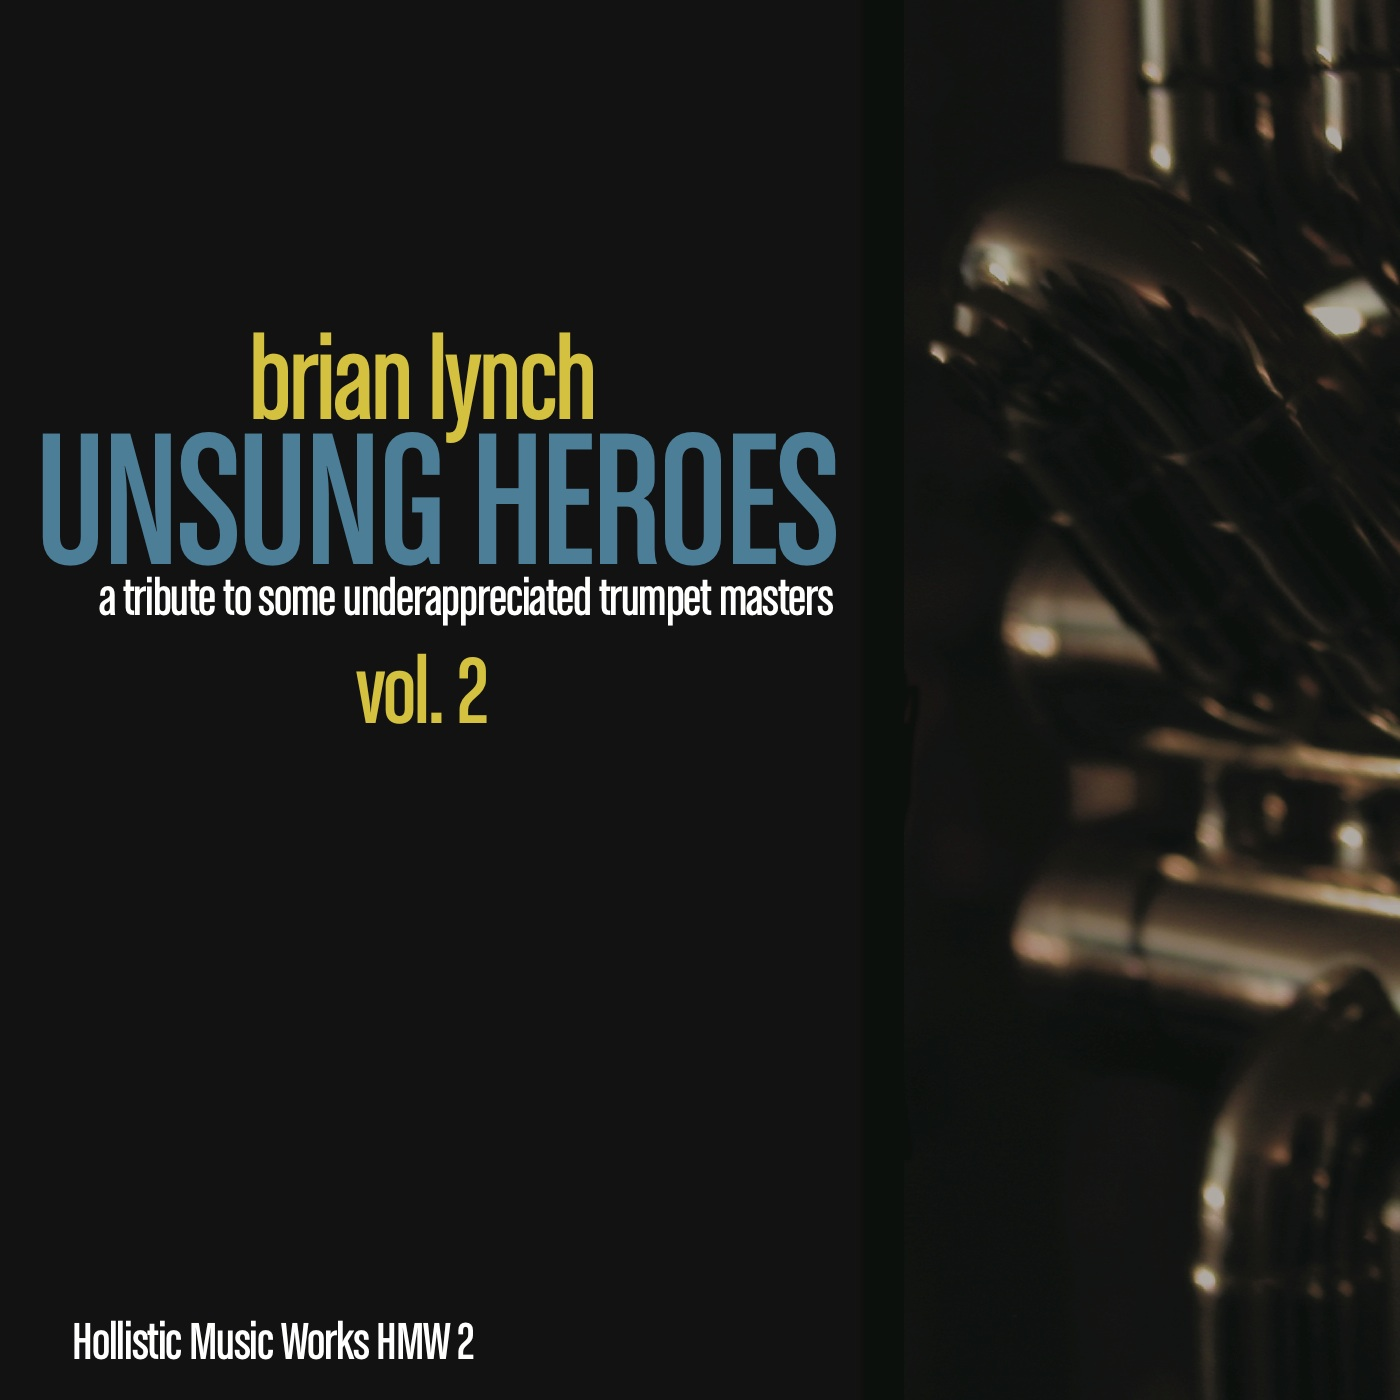 unsung heroes essay kino the unsung hero the unsung hero of the st  hollistic musicworks brian lynch s ldquounsung heroes vol 2rdquo finally released on cd the acclaimed recording